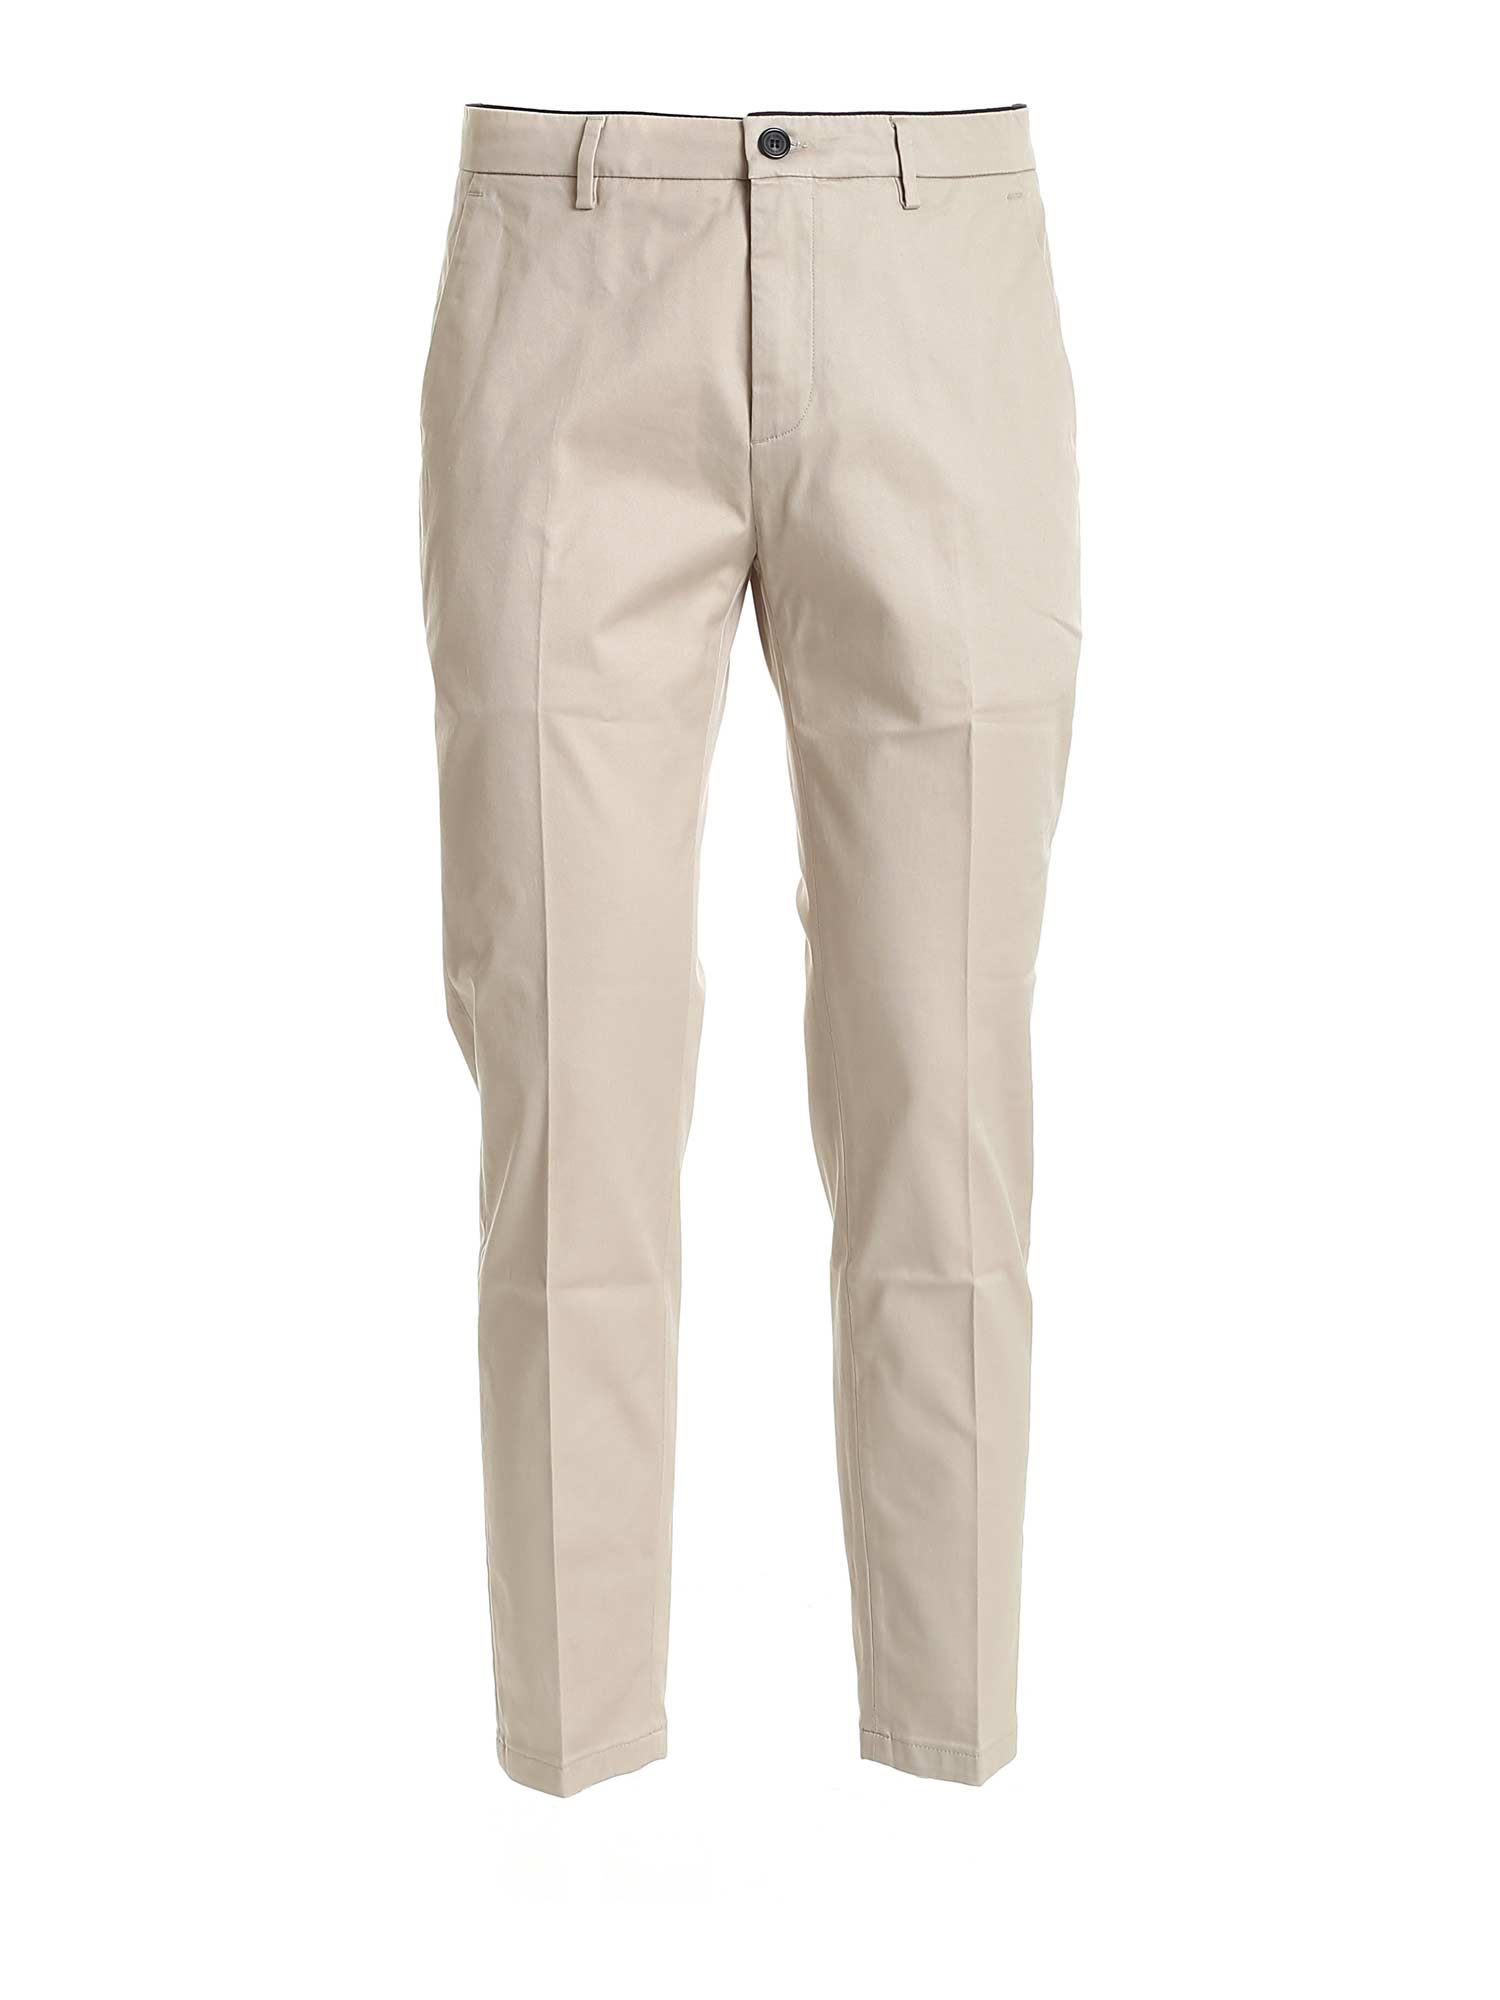 Department 5 Cottons PRINCE CHINO PANTS IN BEIGE